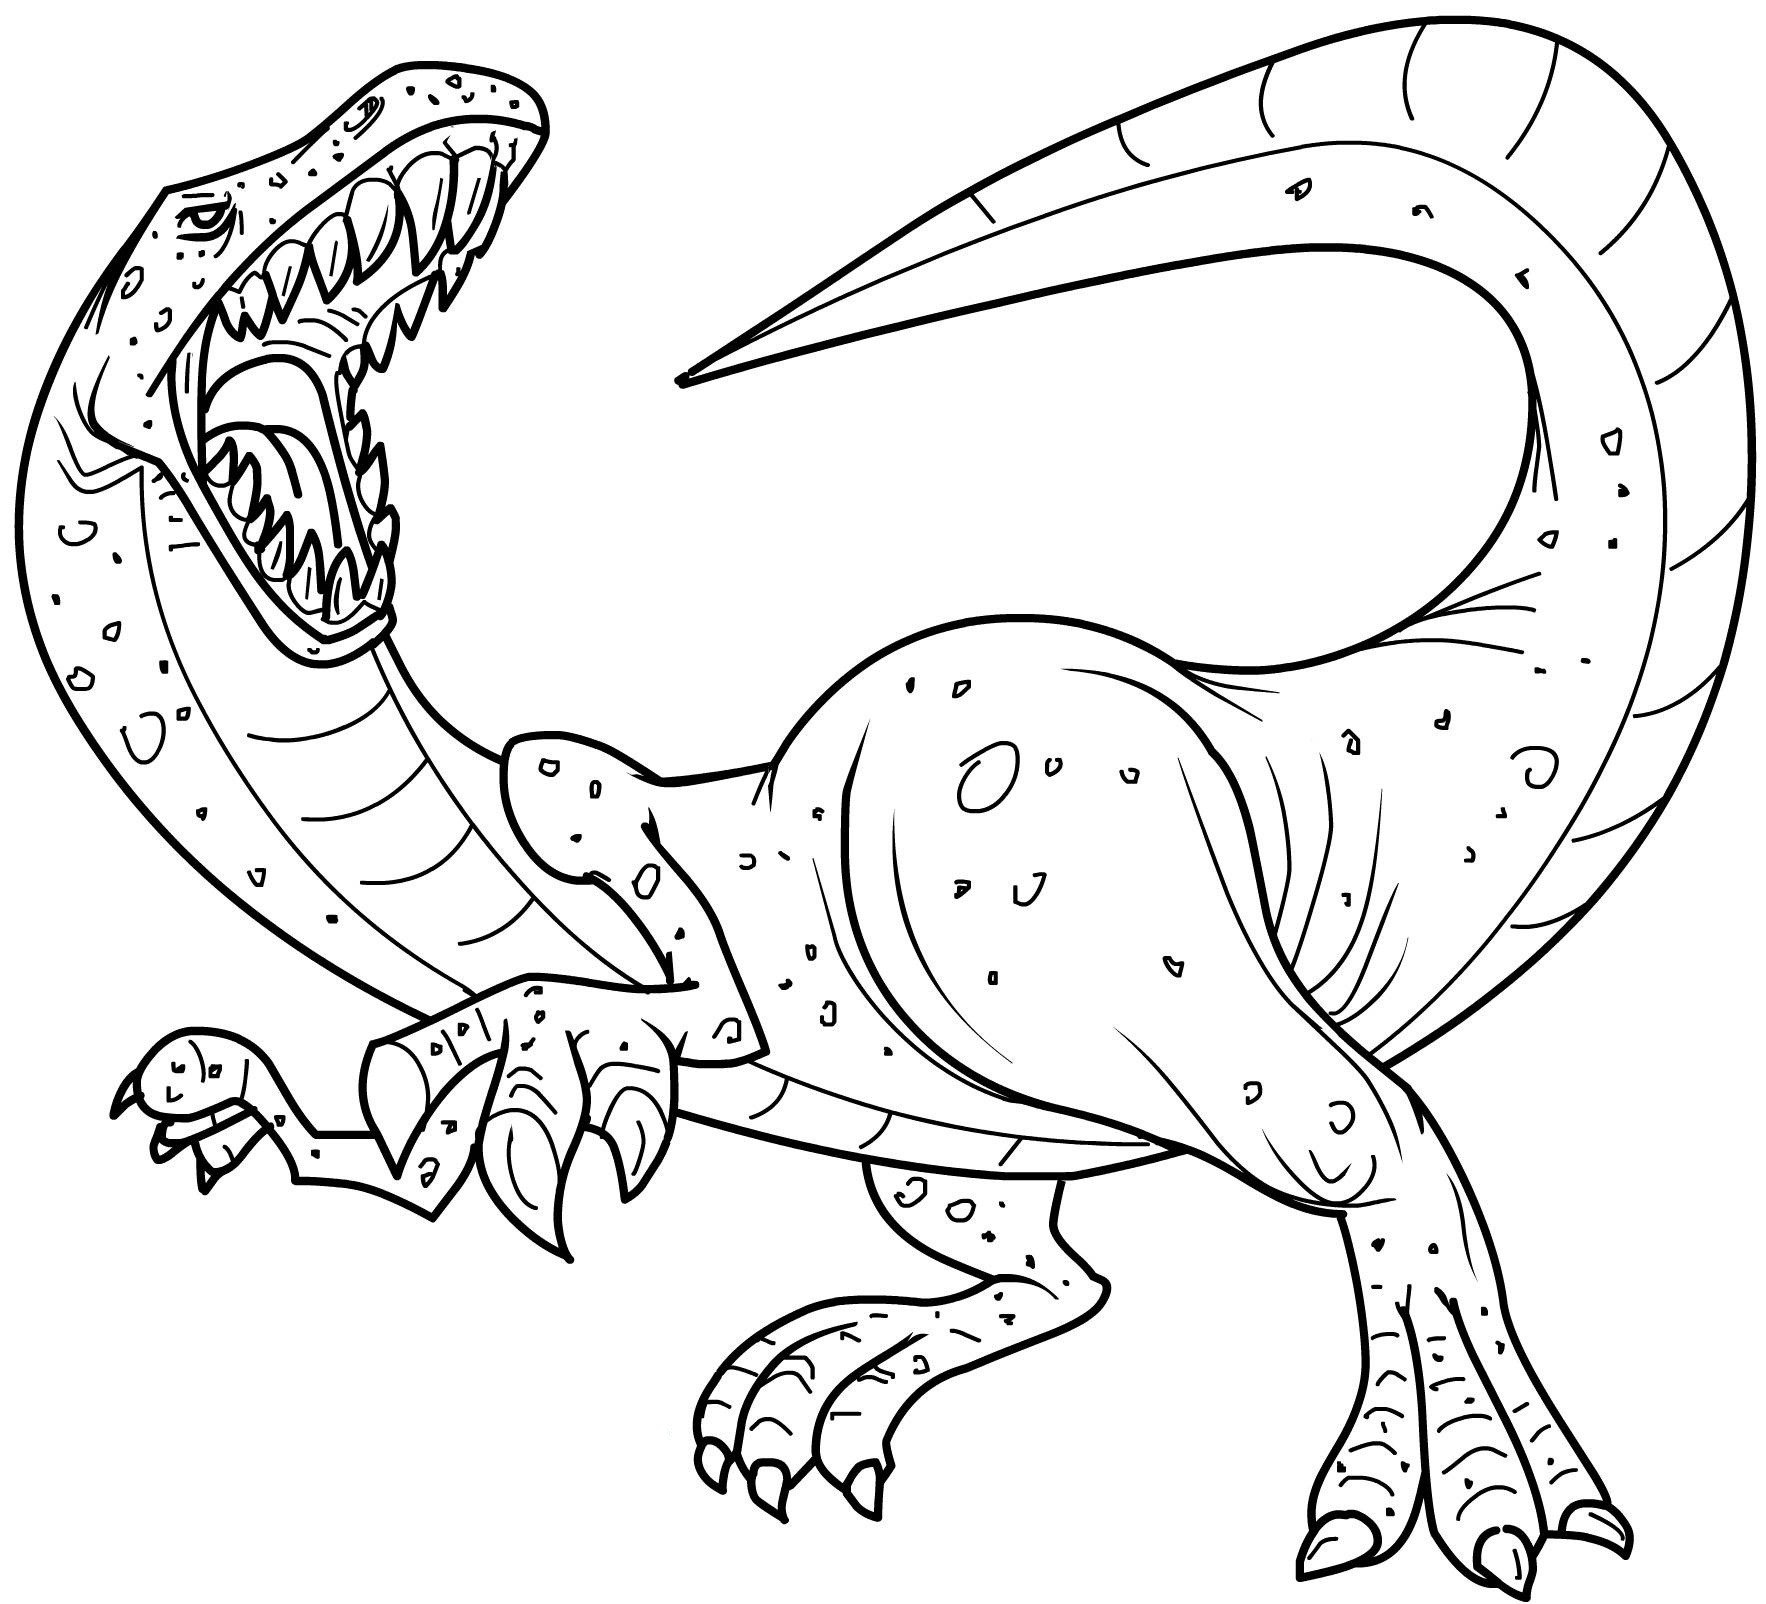 Scary dinosaur coloring pages - Realistic Coloring Pages